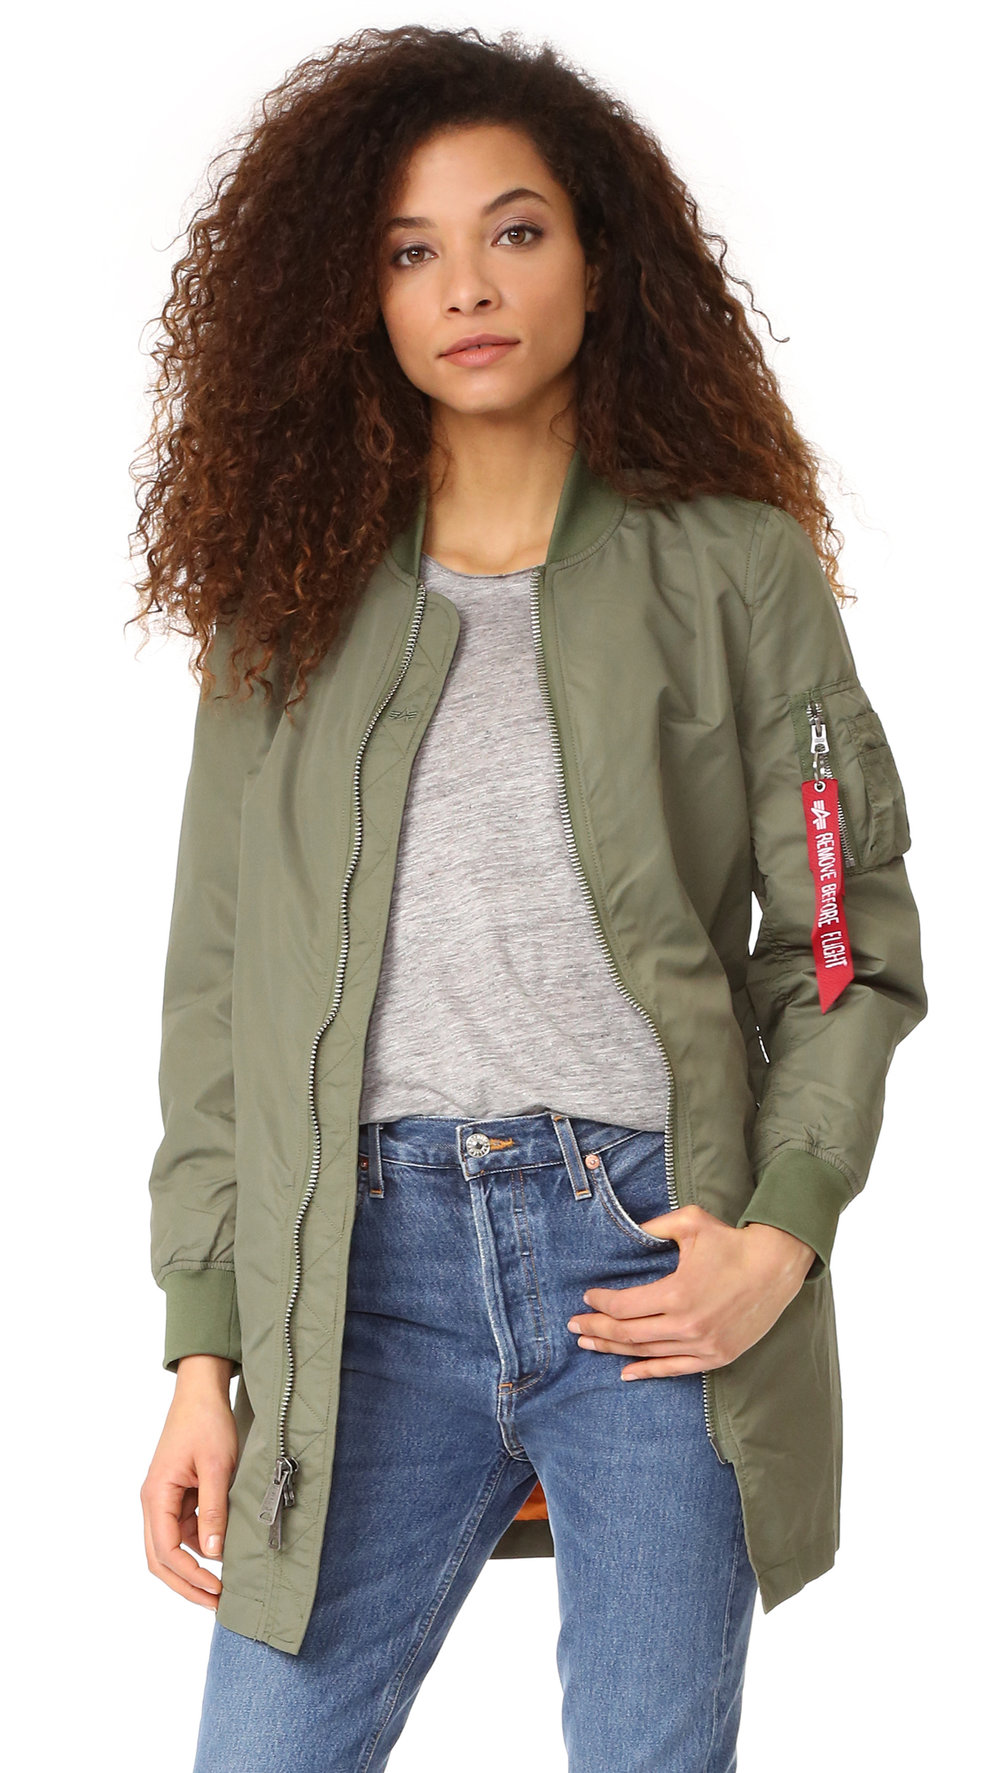 Alpha Industries - Long Bomber Jacket $150.00